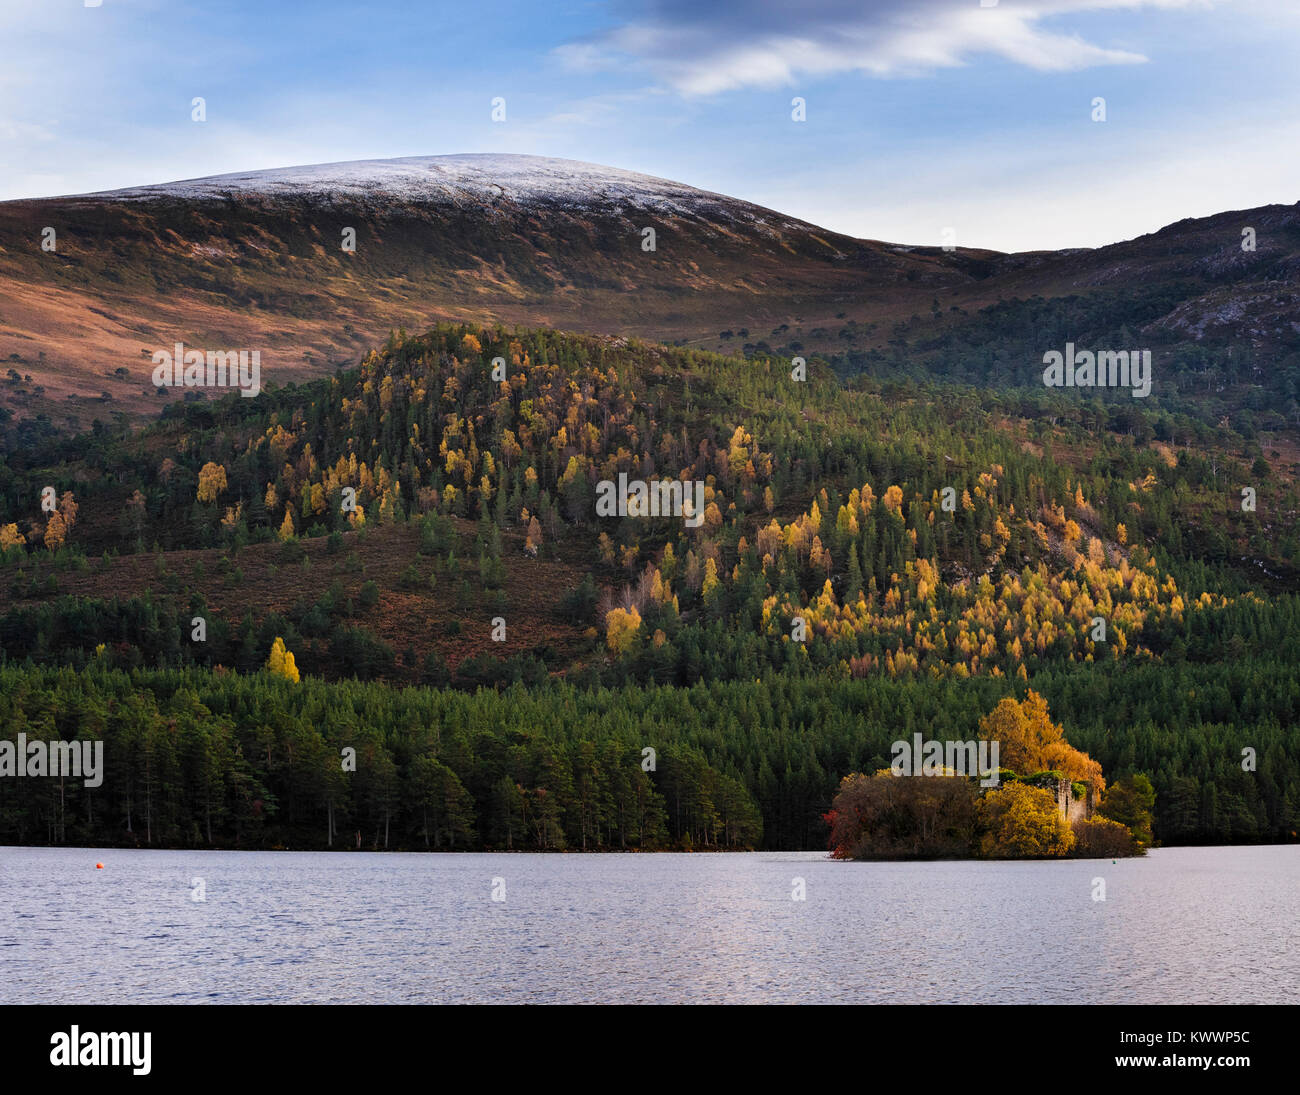 Loch an Eilein and Creag Dhubh in the Rothiemurchus forest area of the Cairngorms National Park - Stock Image